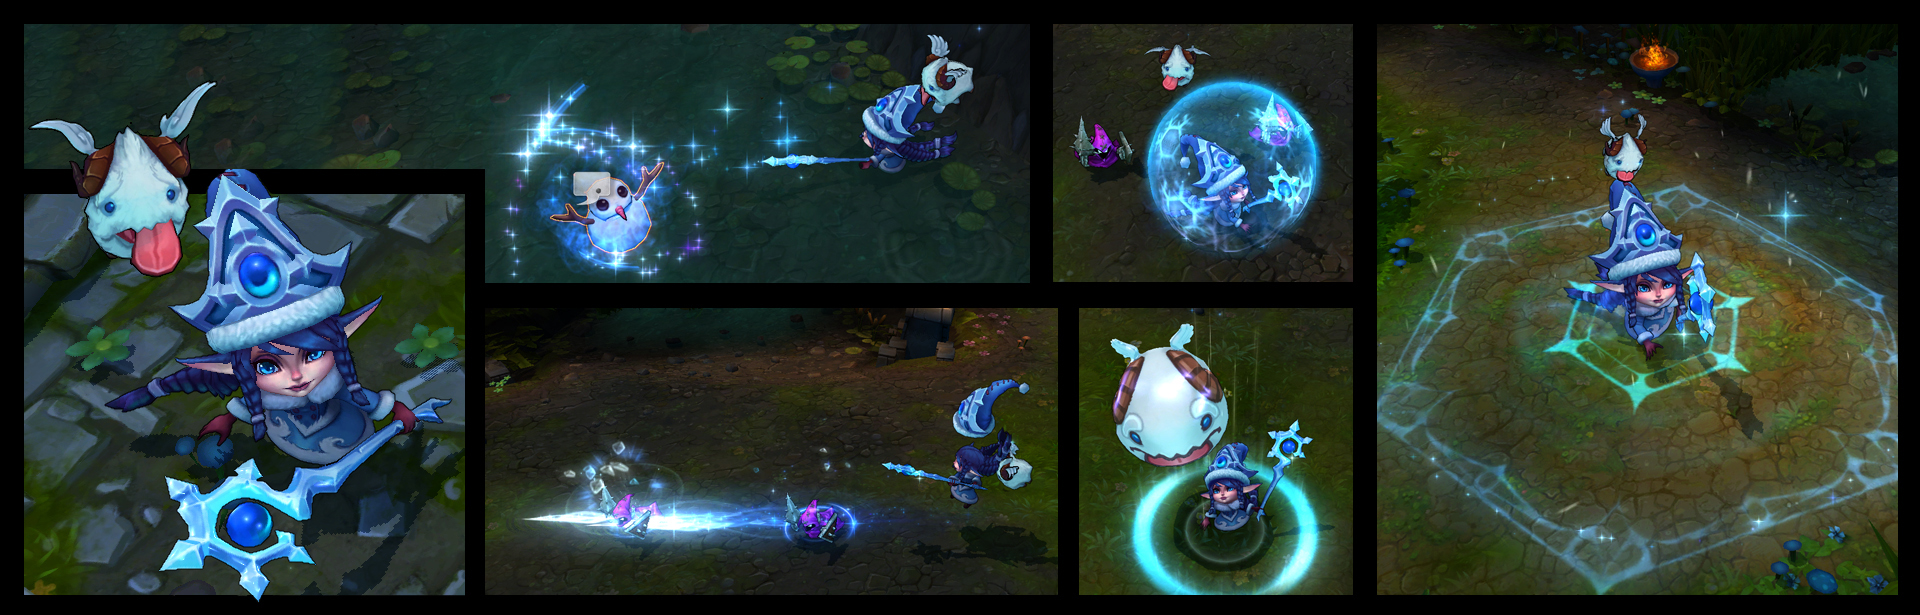 Winter Wonder Lulu - Skin Spotlight - Get it now!